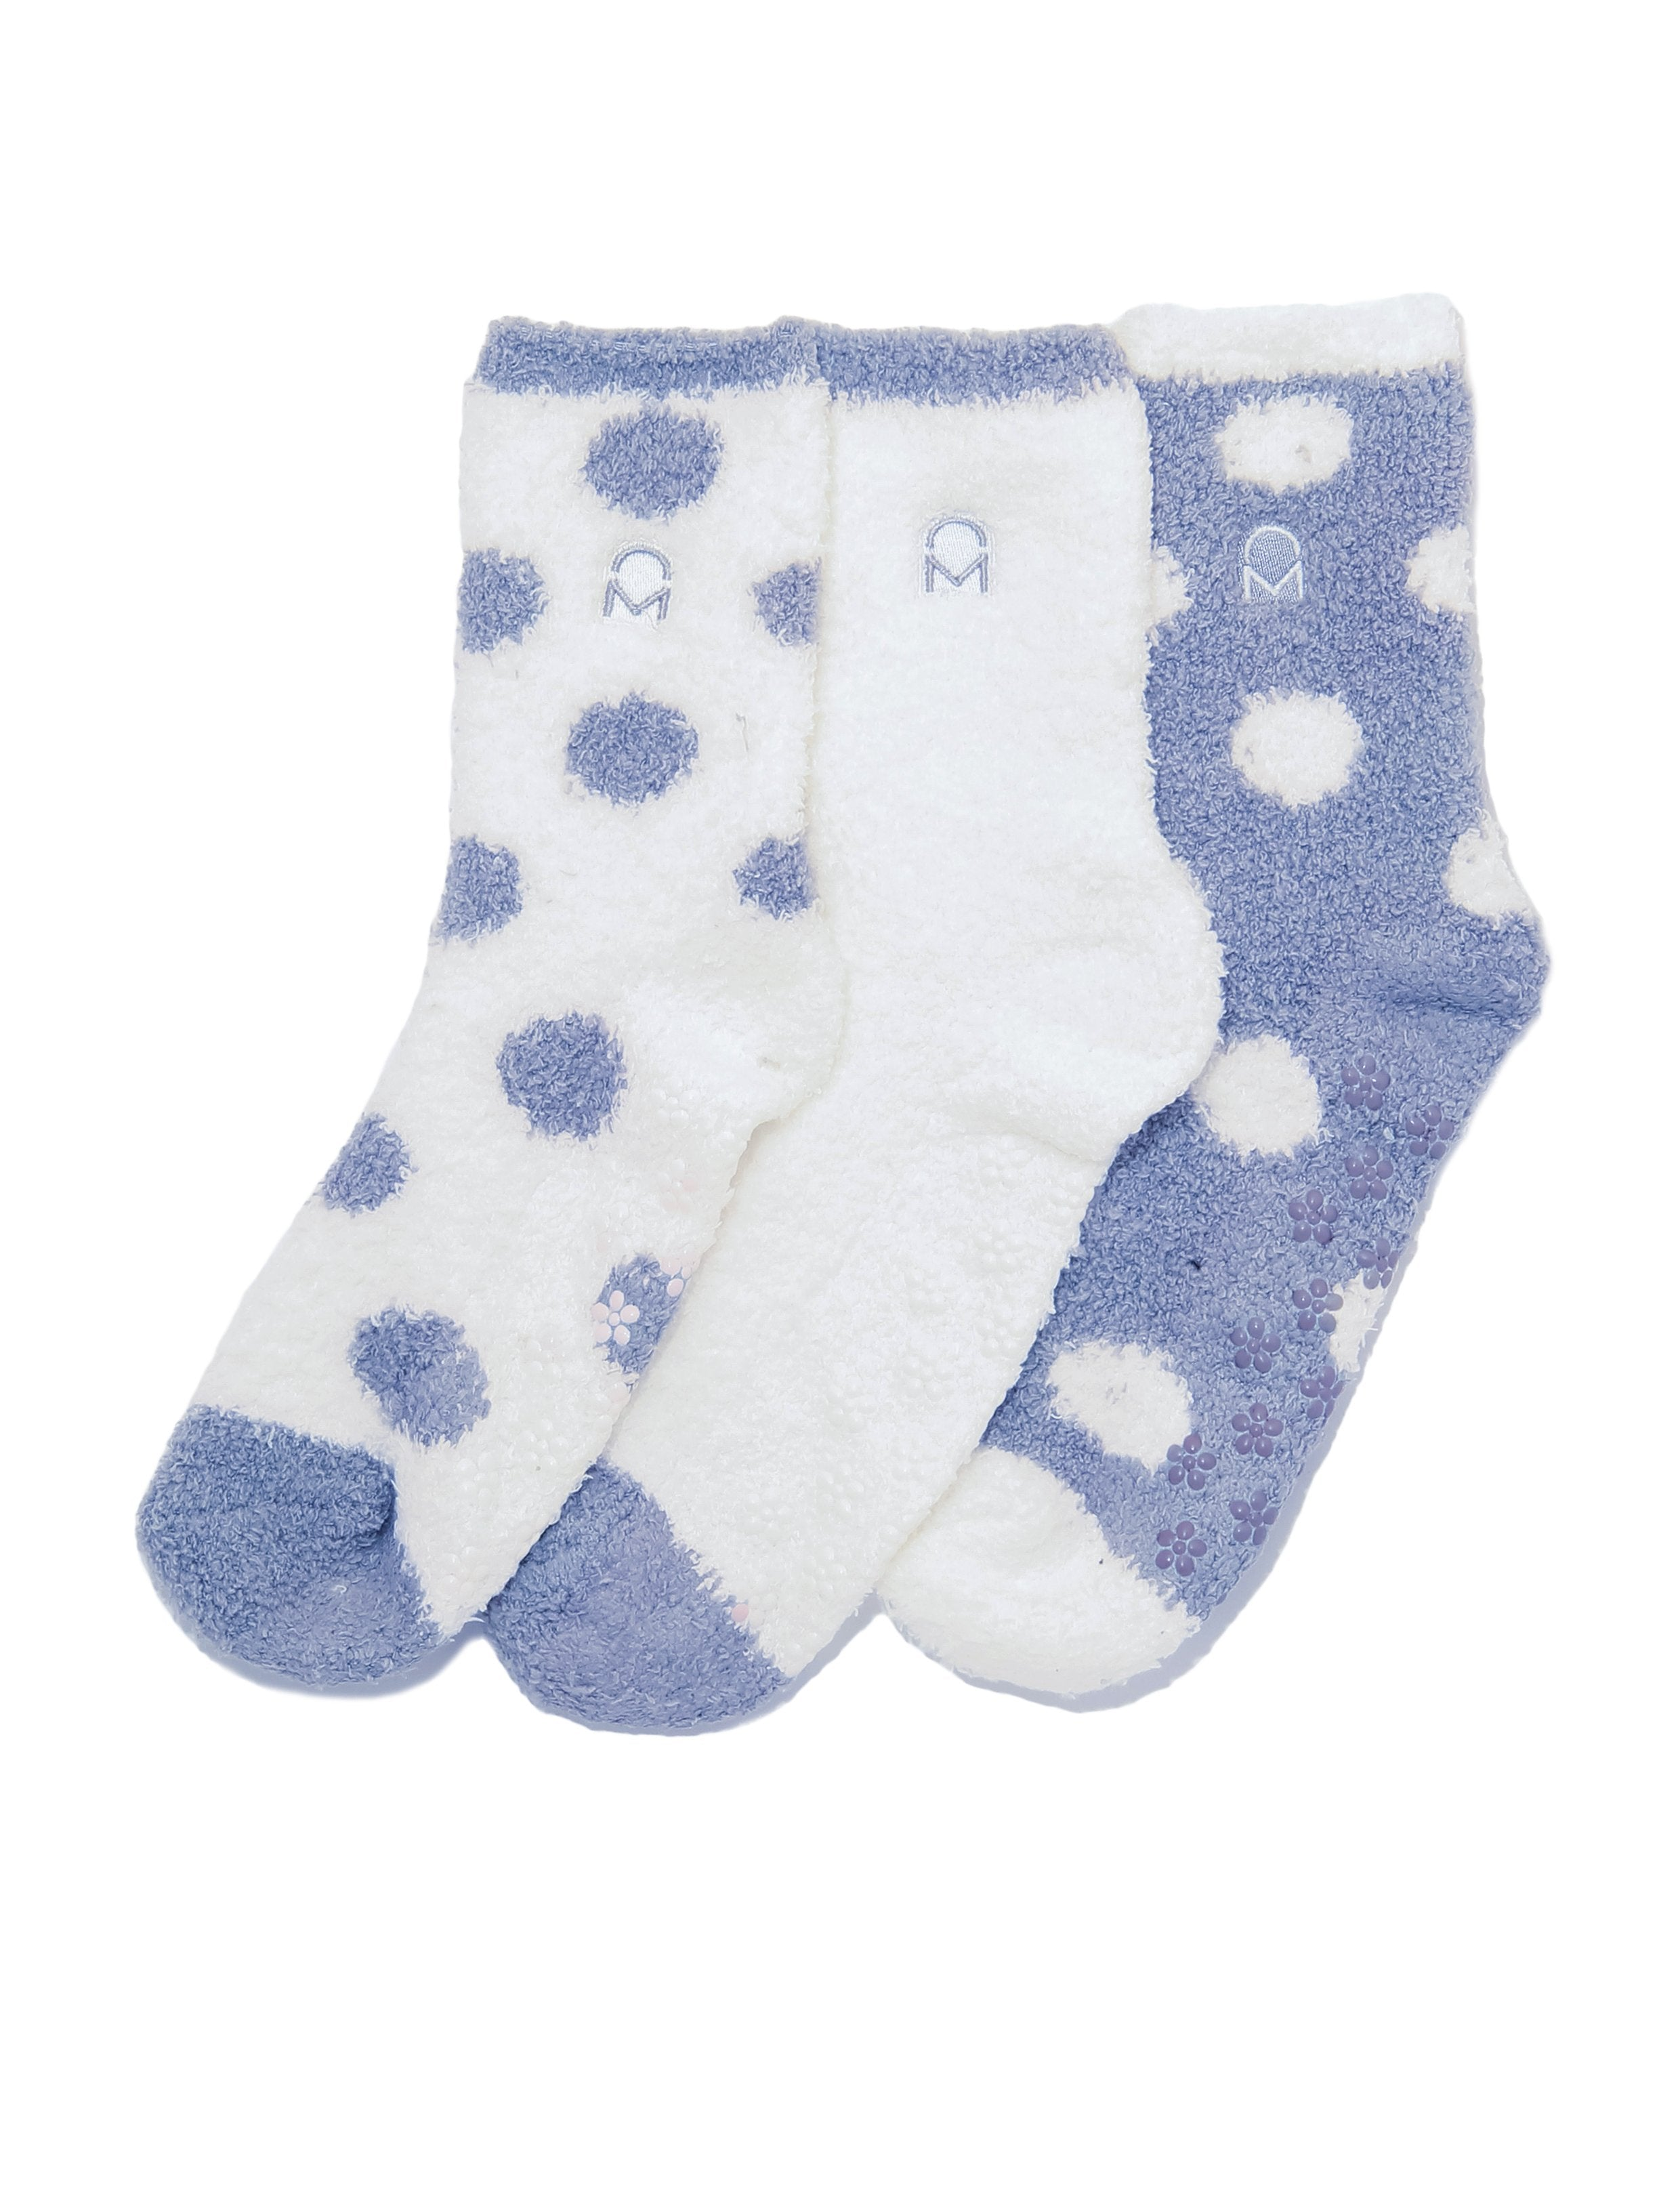 Women's (3 Pairs) Soft Anti-Skid Fuzzy Winter Crew Socks - Set D2